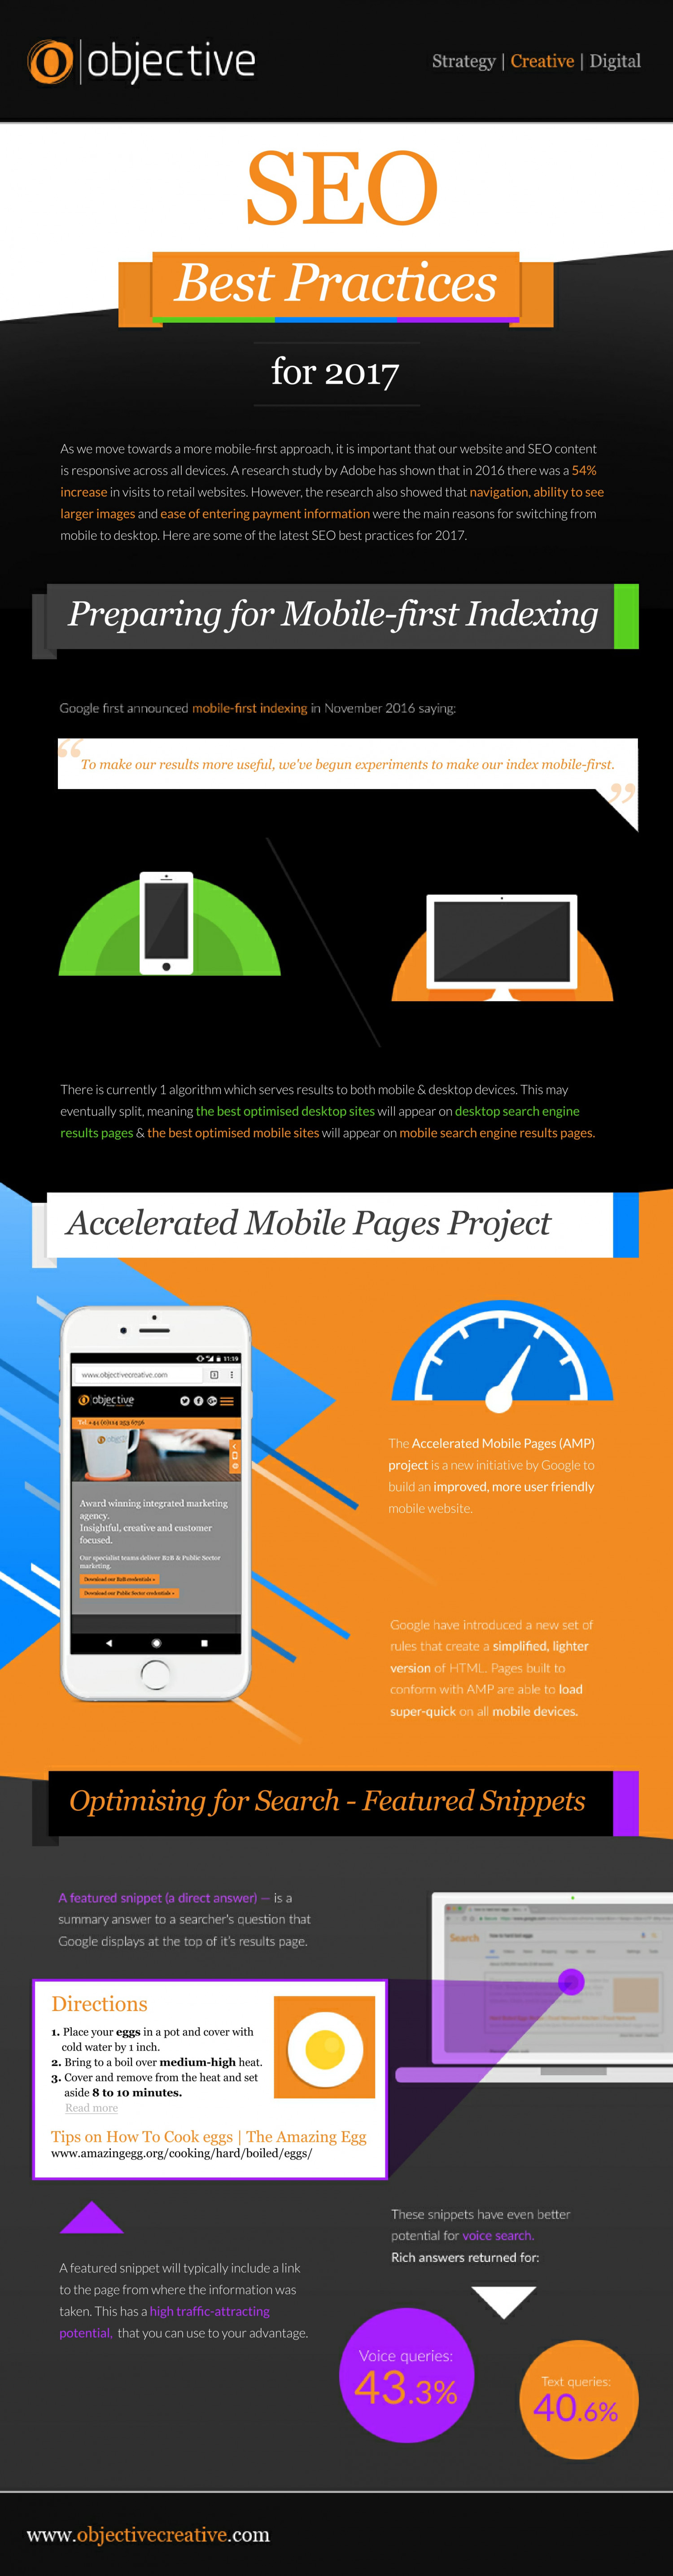 SEO Best Practices For 2017  Infographic